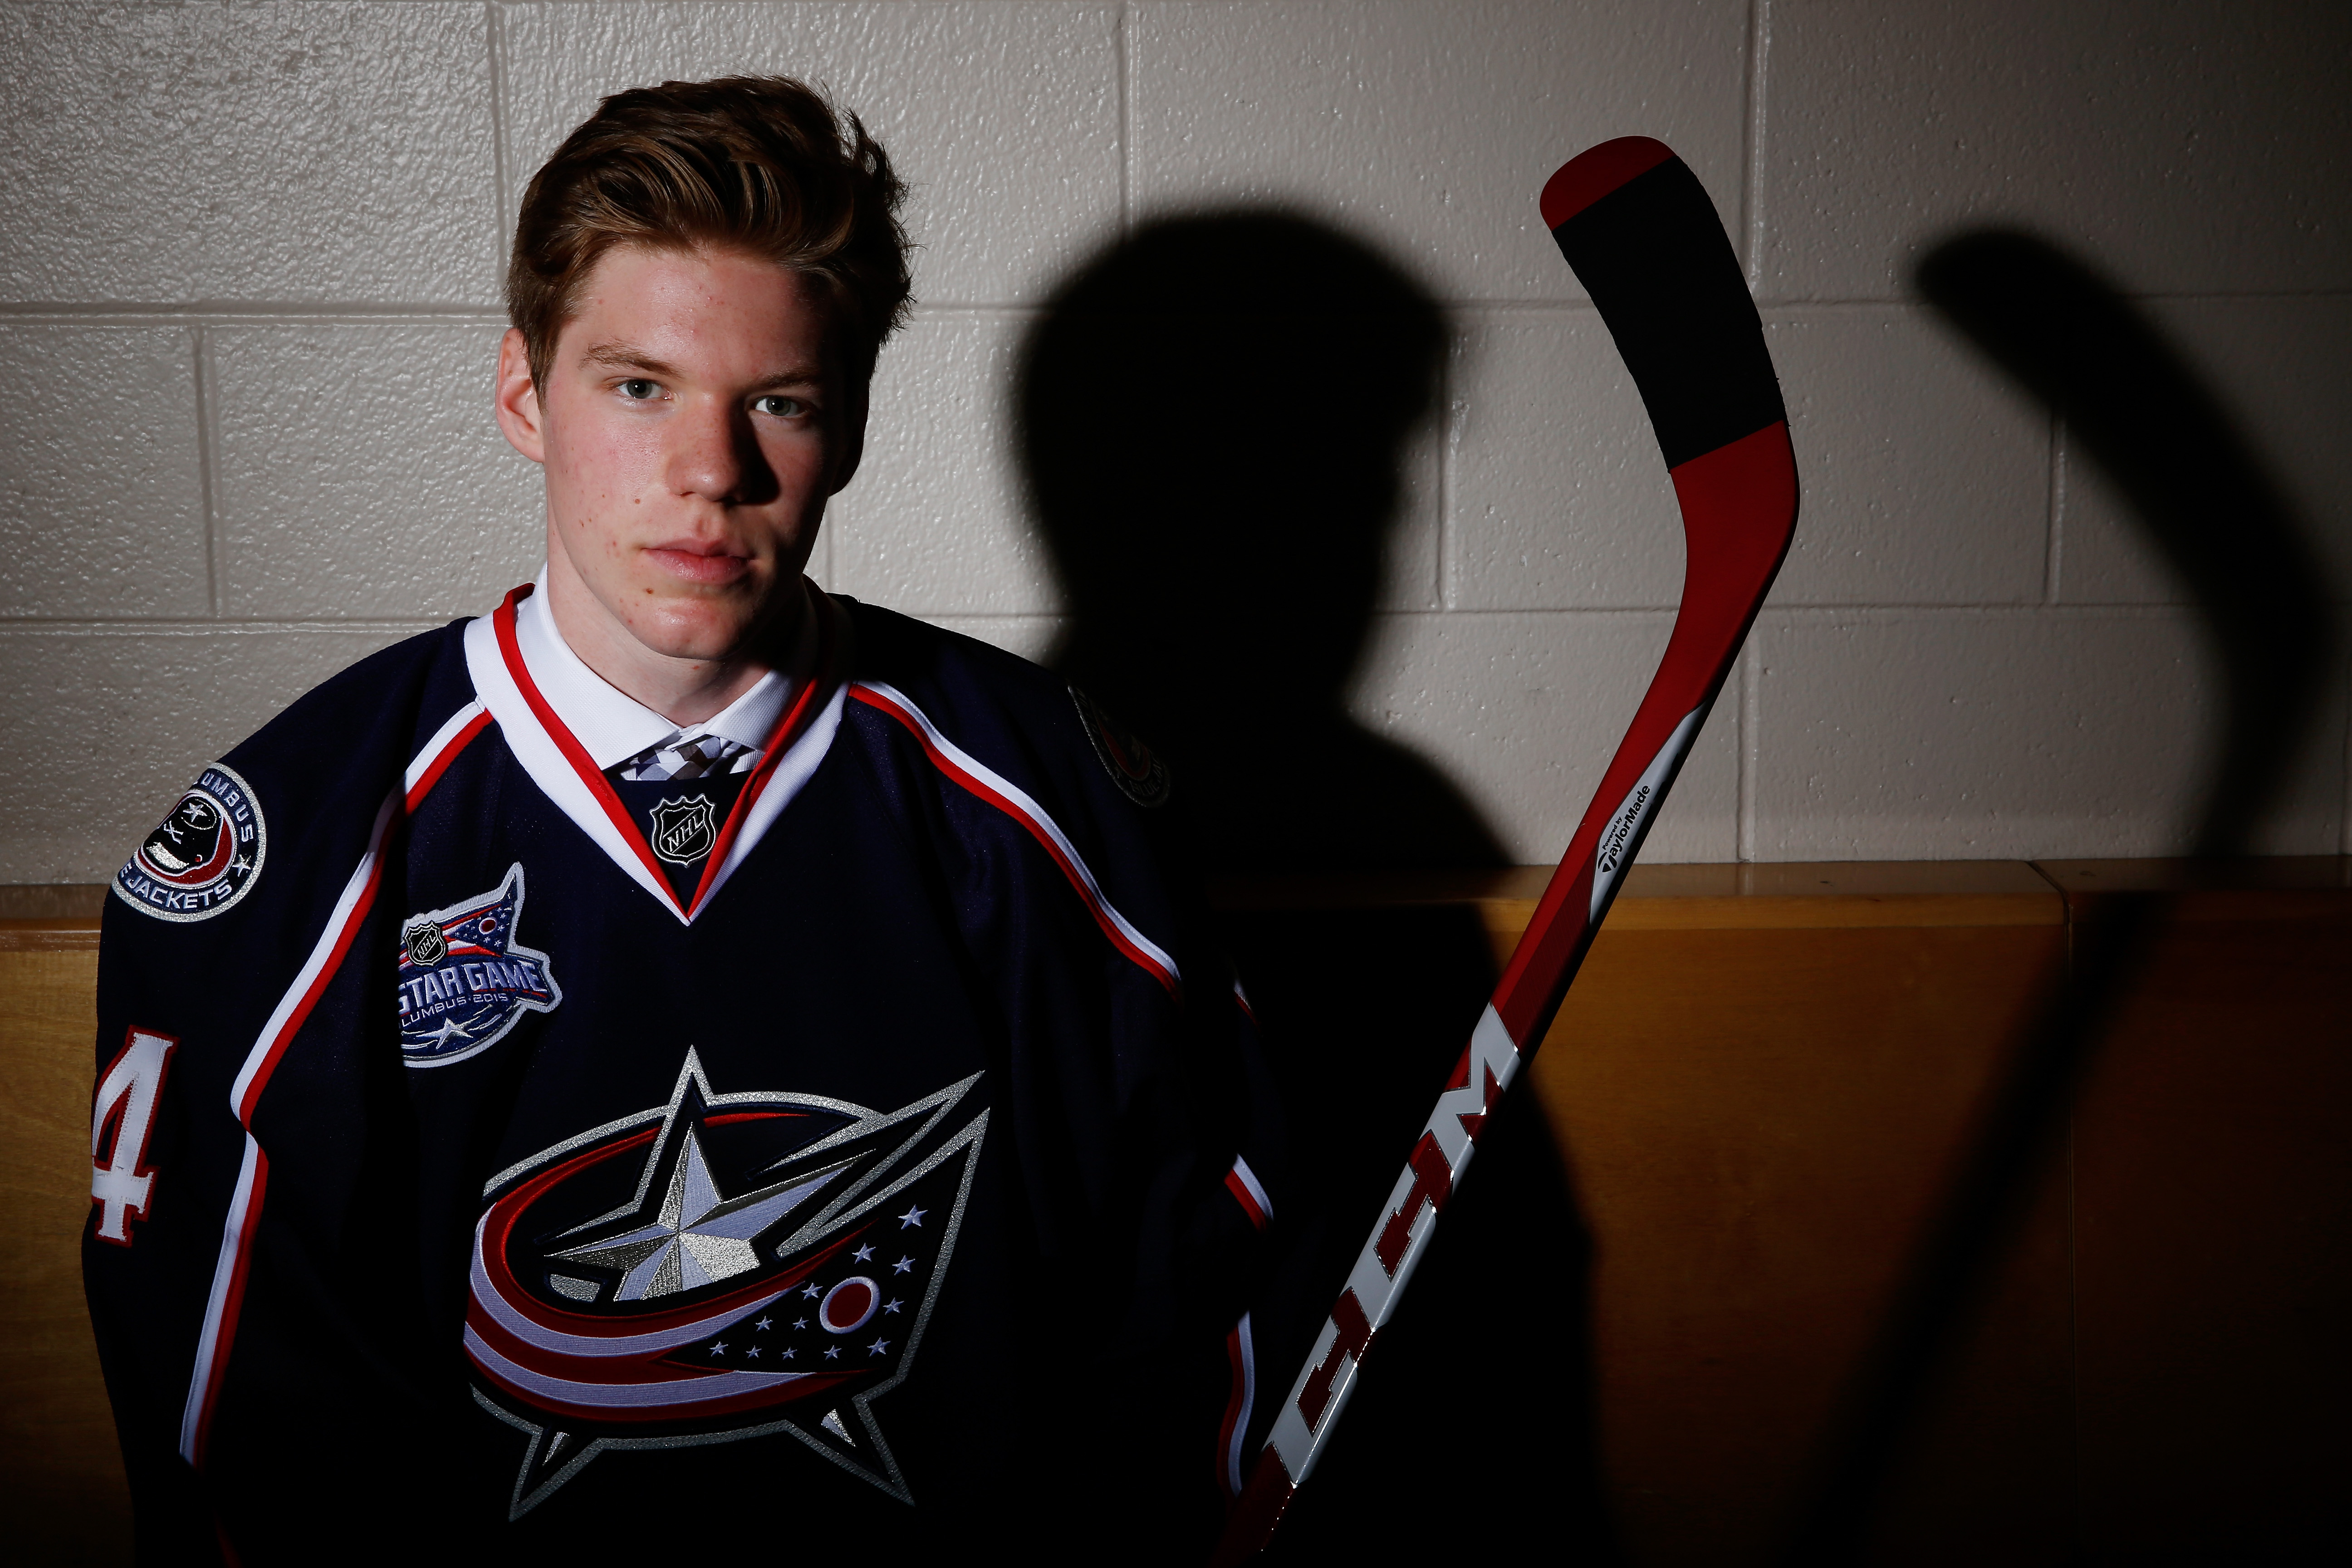 Minnesota freshman D Ryan Collins, seen here after being drafted by Columbus in the 2014 NHL Draft